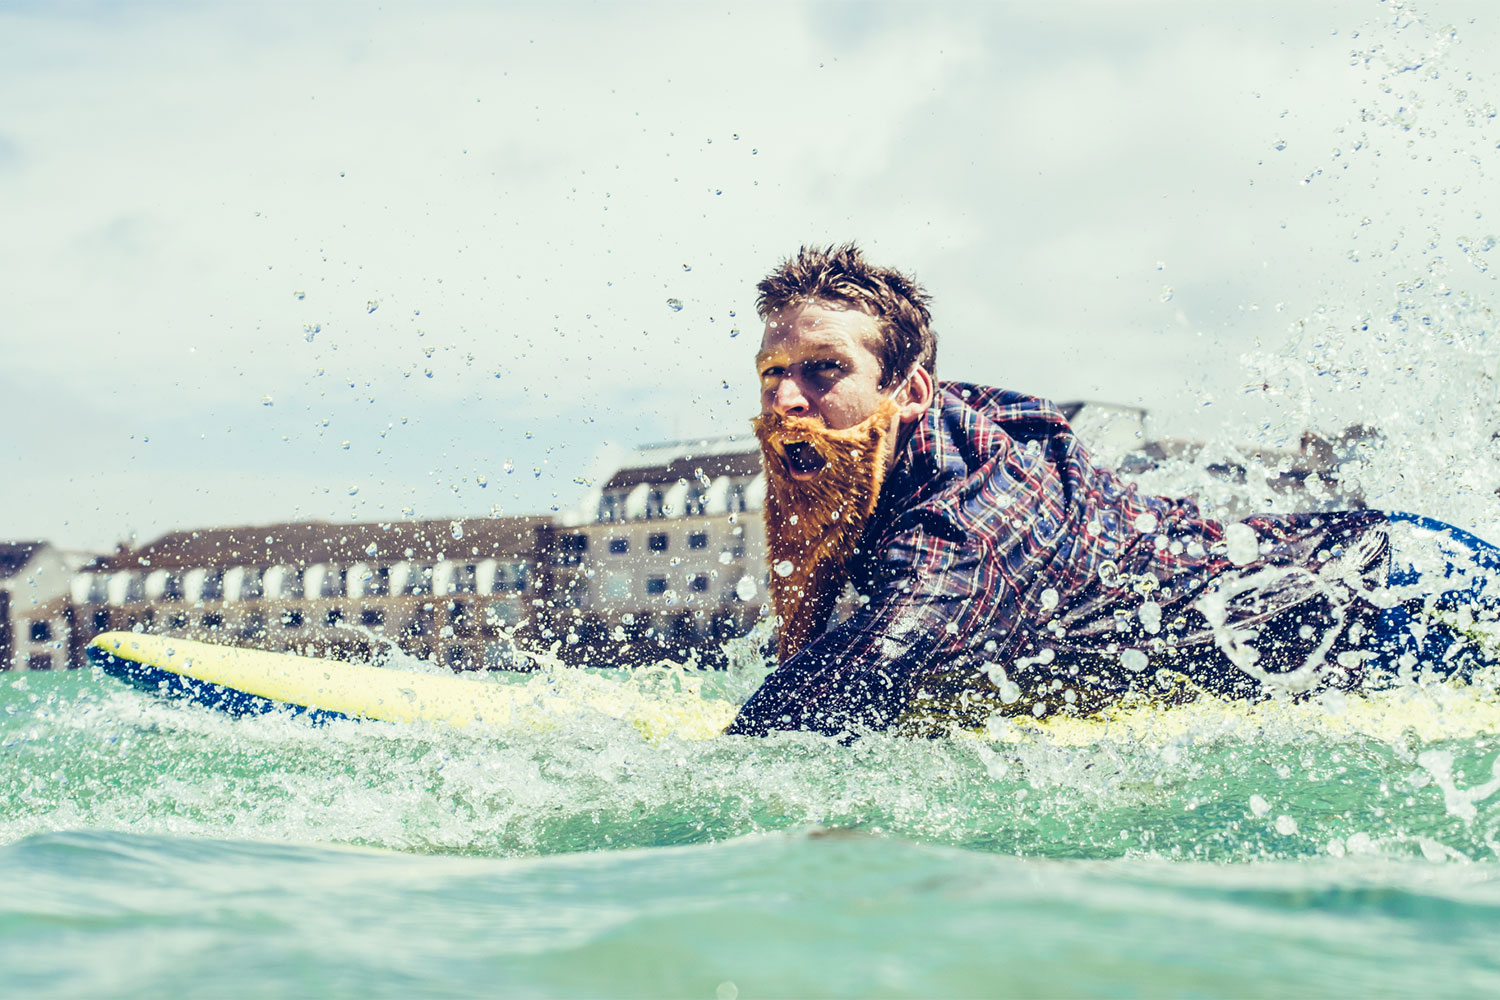 St Ives Swellboard 02